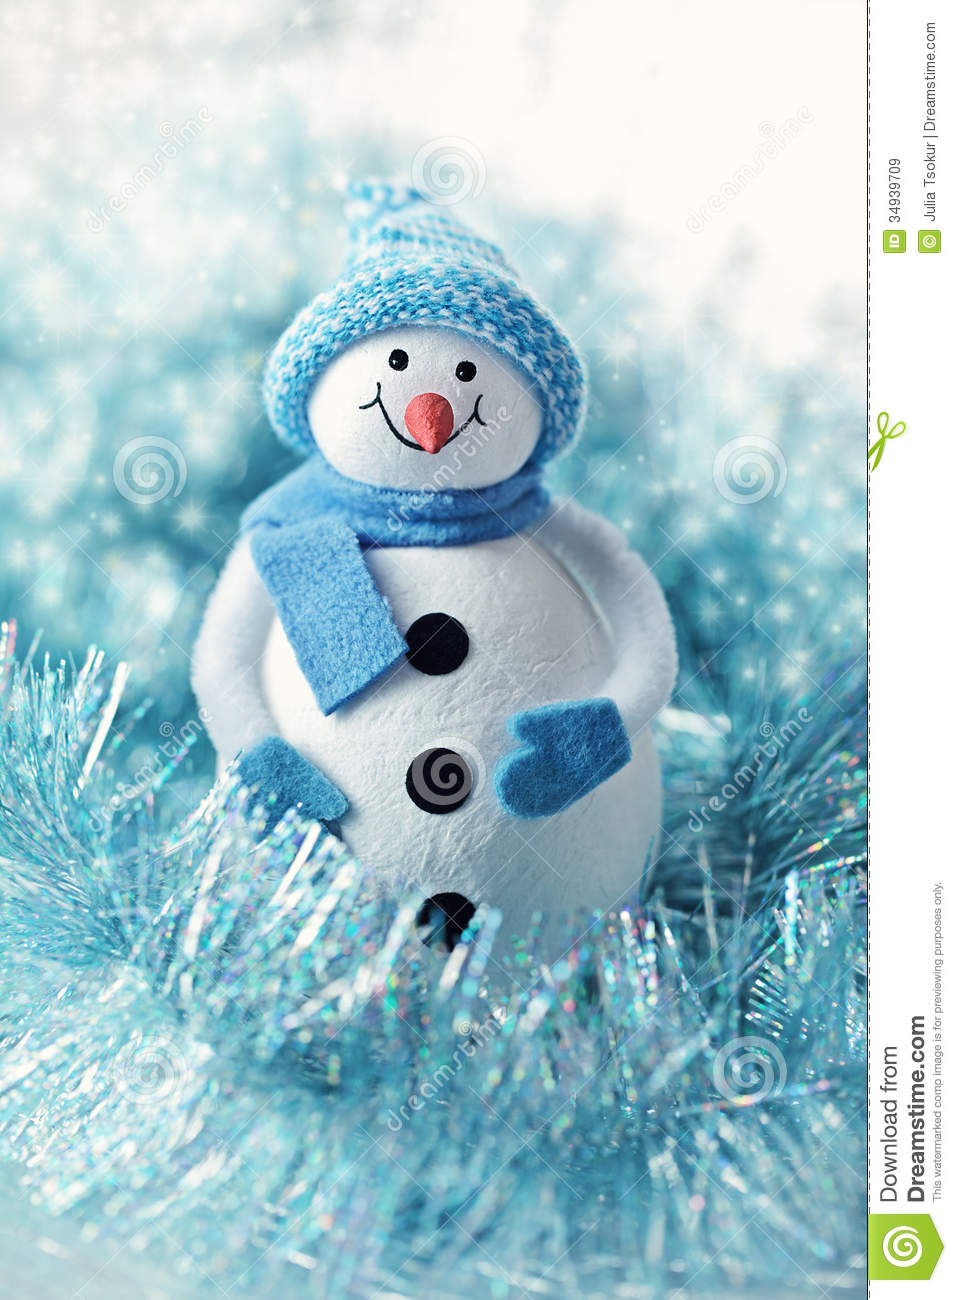 Christmas toy stock image of figure decoration